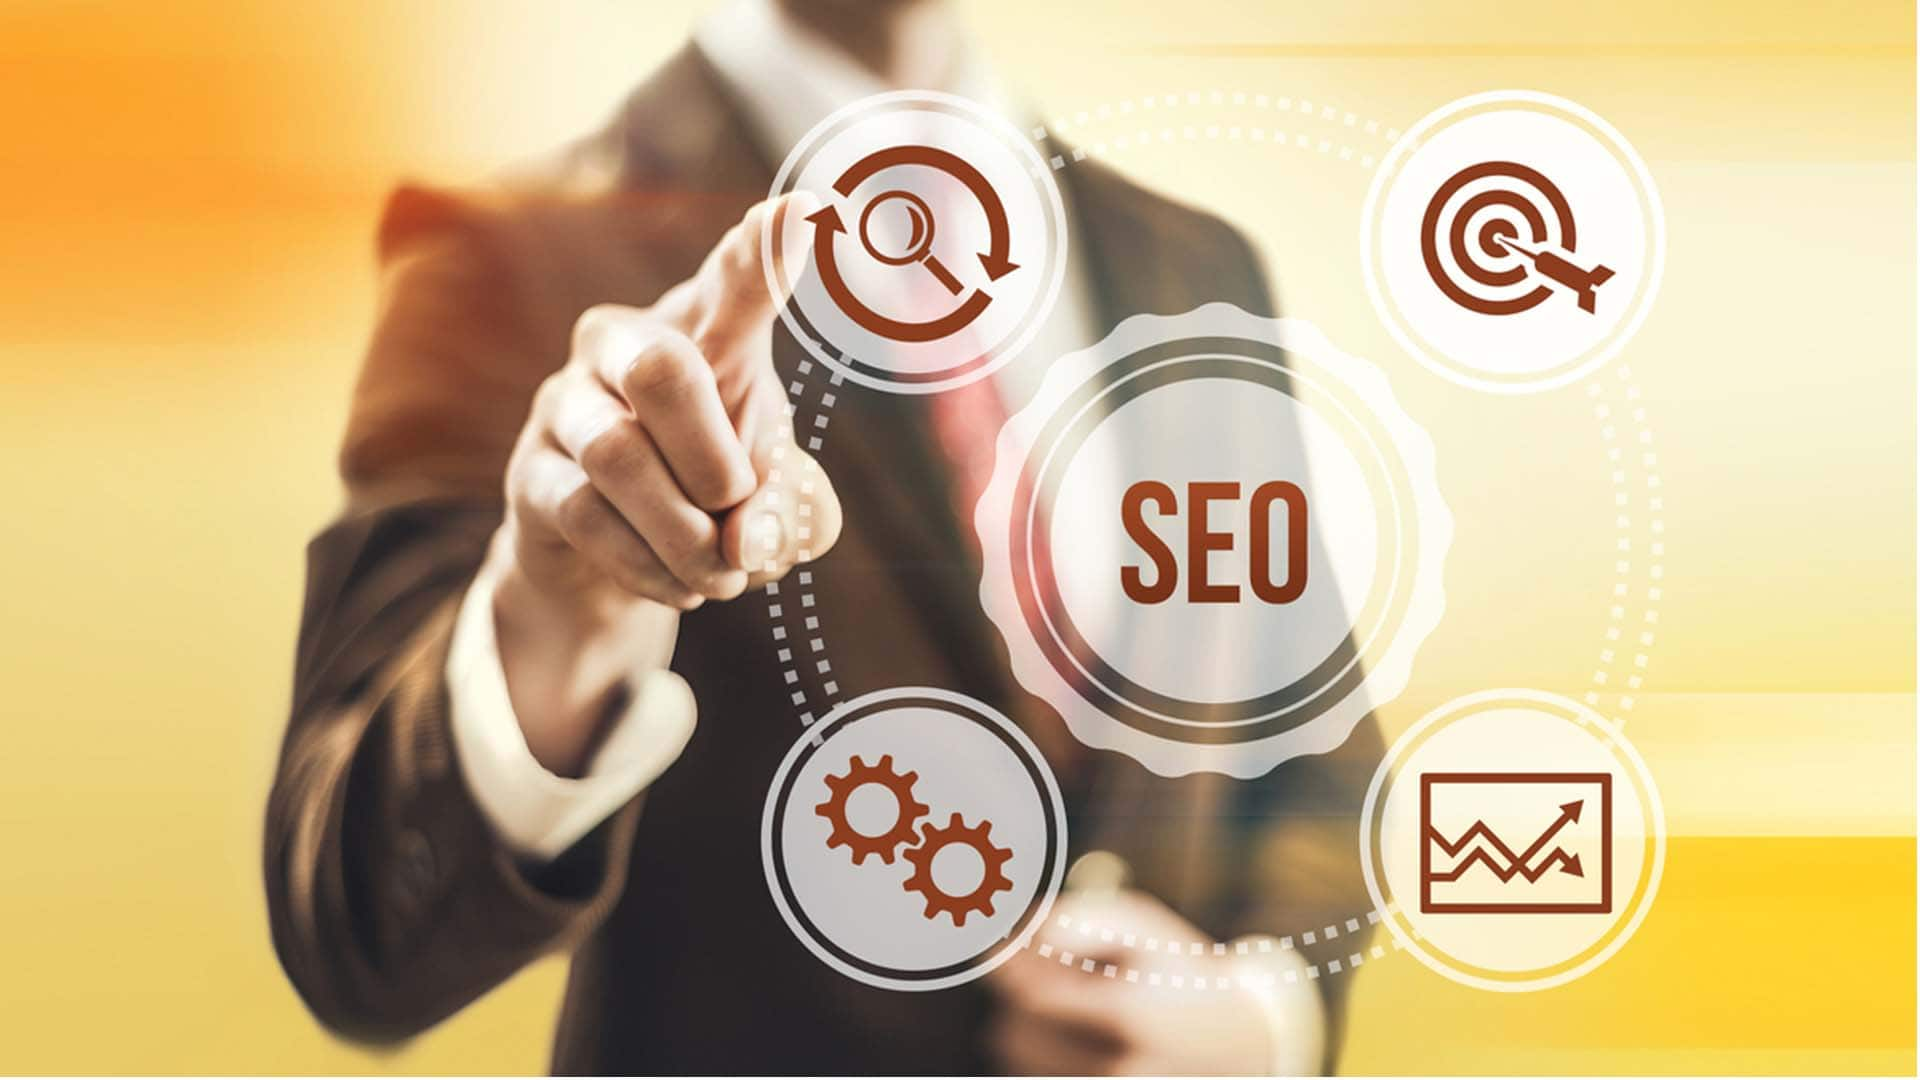 11 Best SEO Tools for Auditing and Enhancing Website Performance in 2019